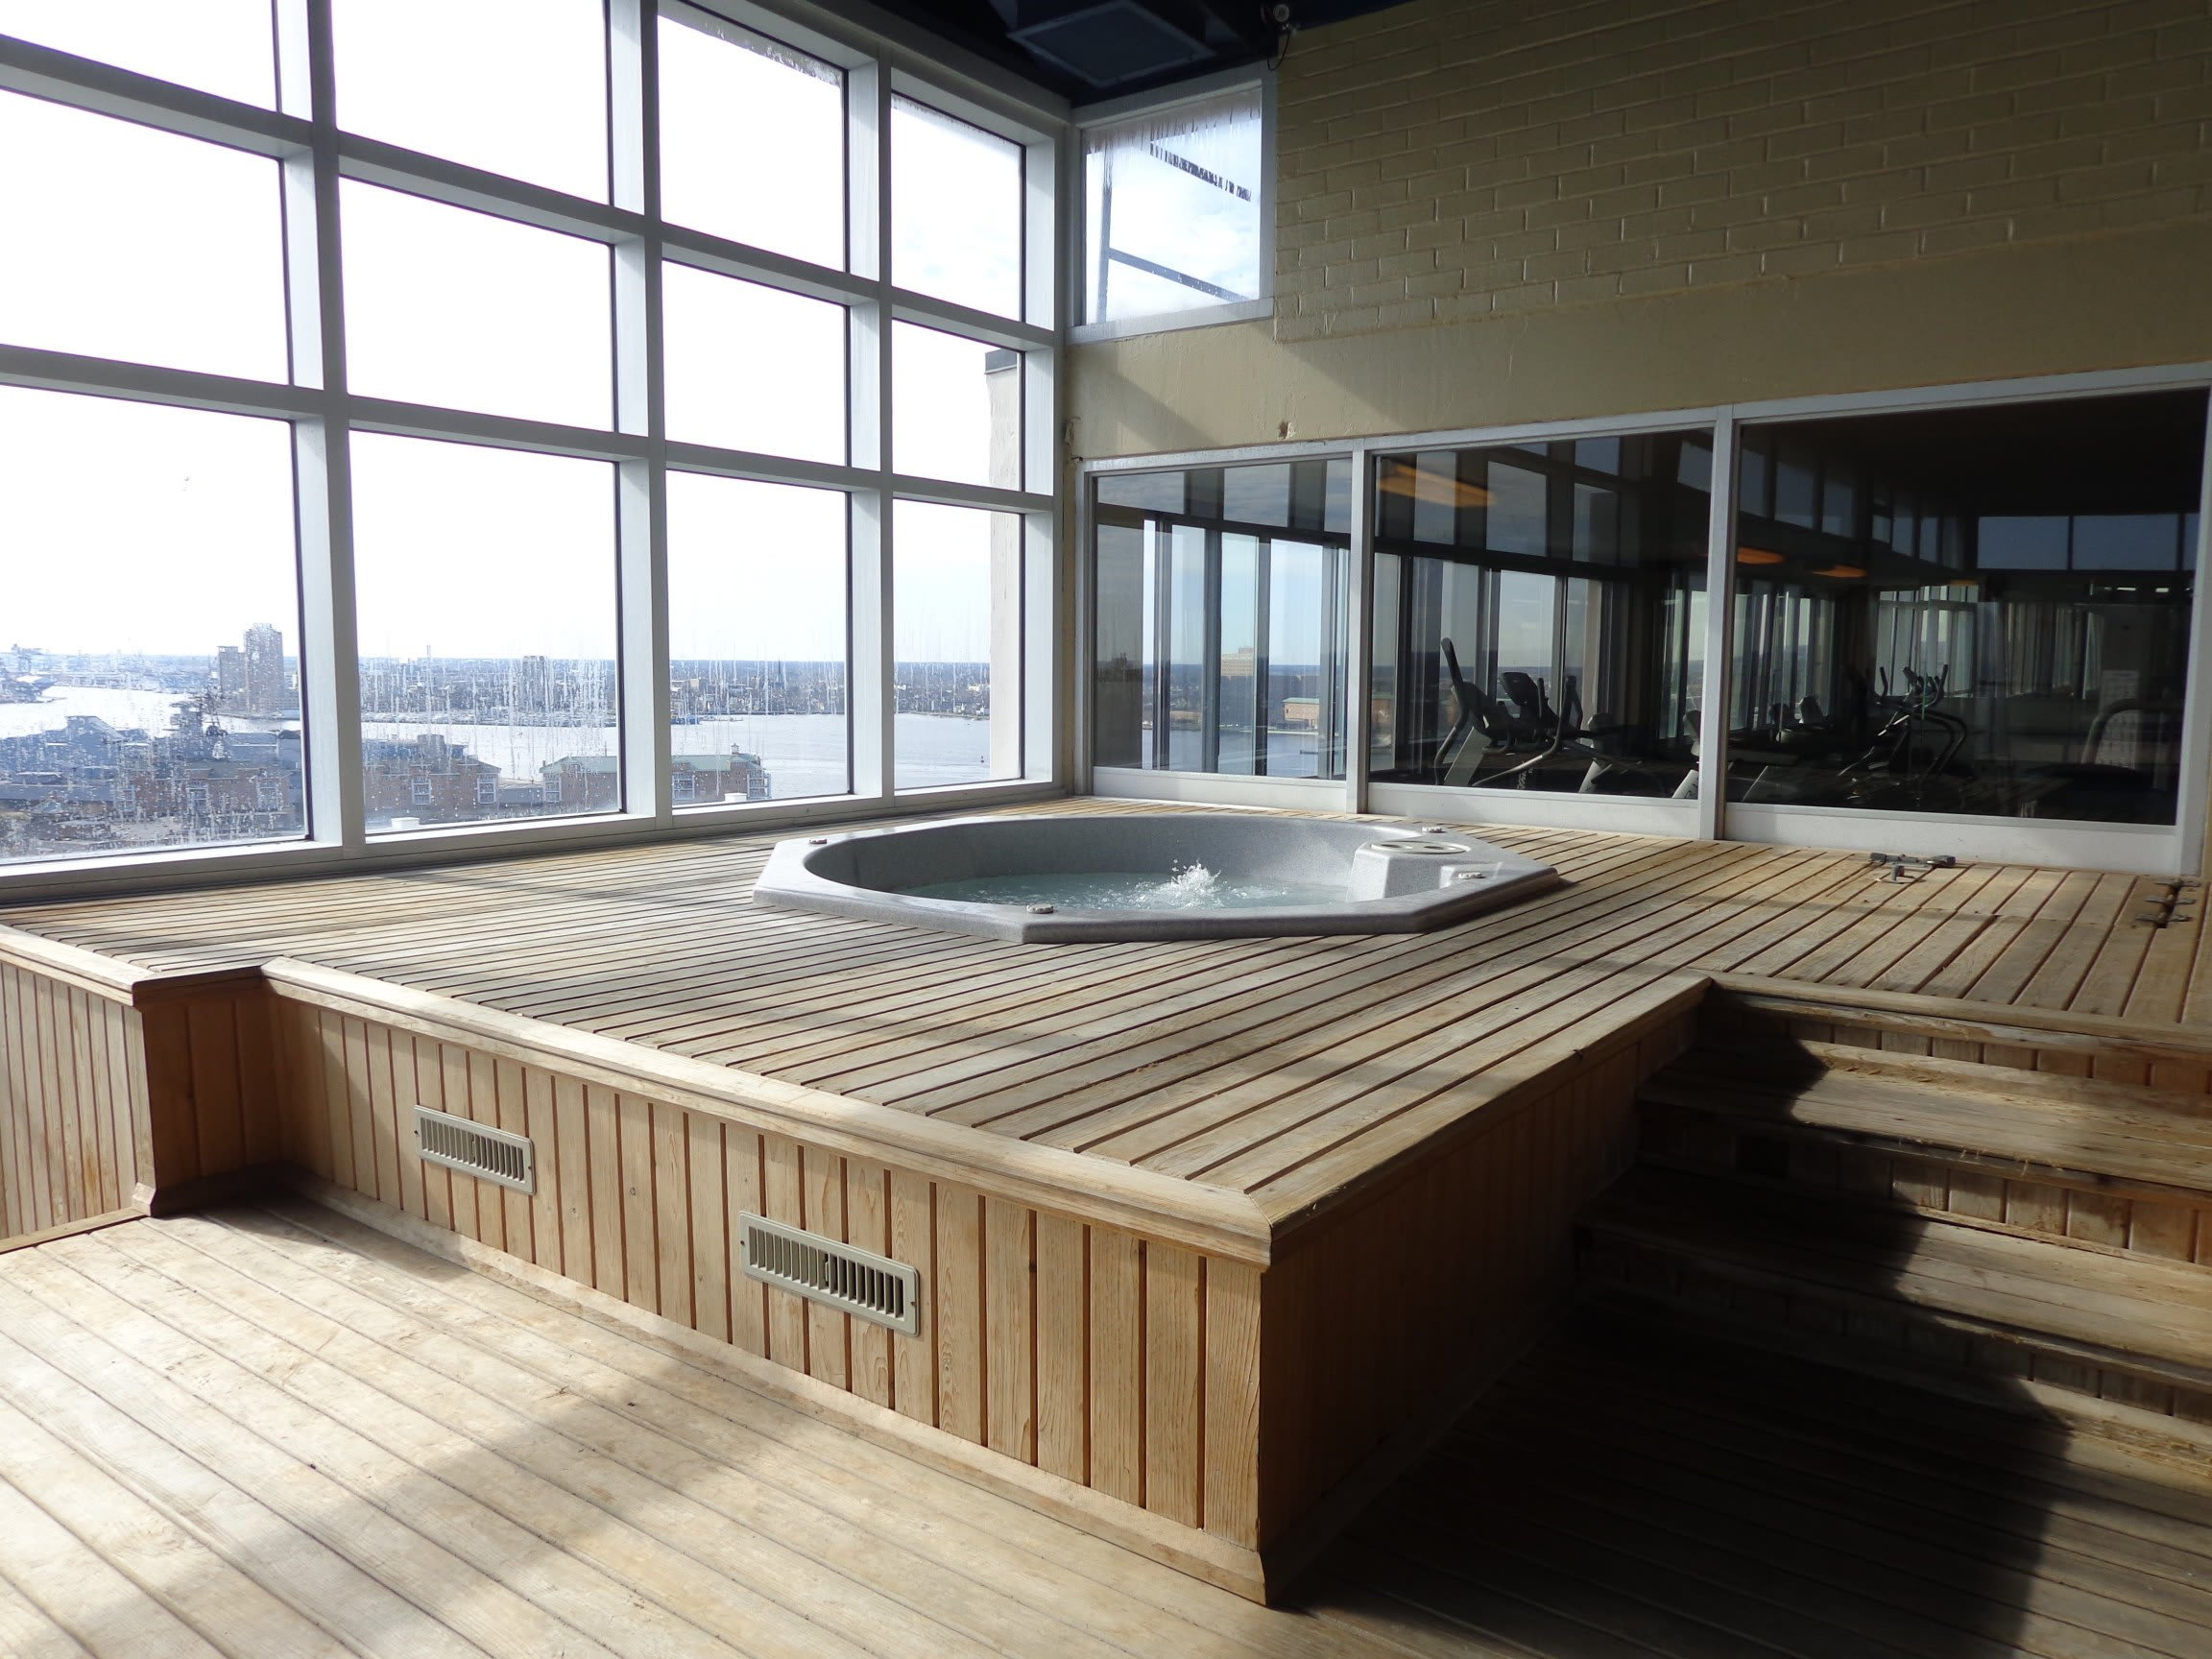 Hot Tub at Hague Towers in Norfolk, Virginia